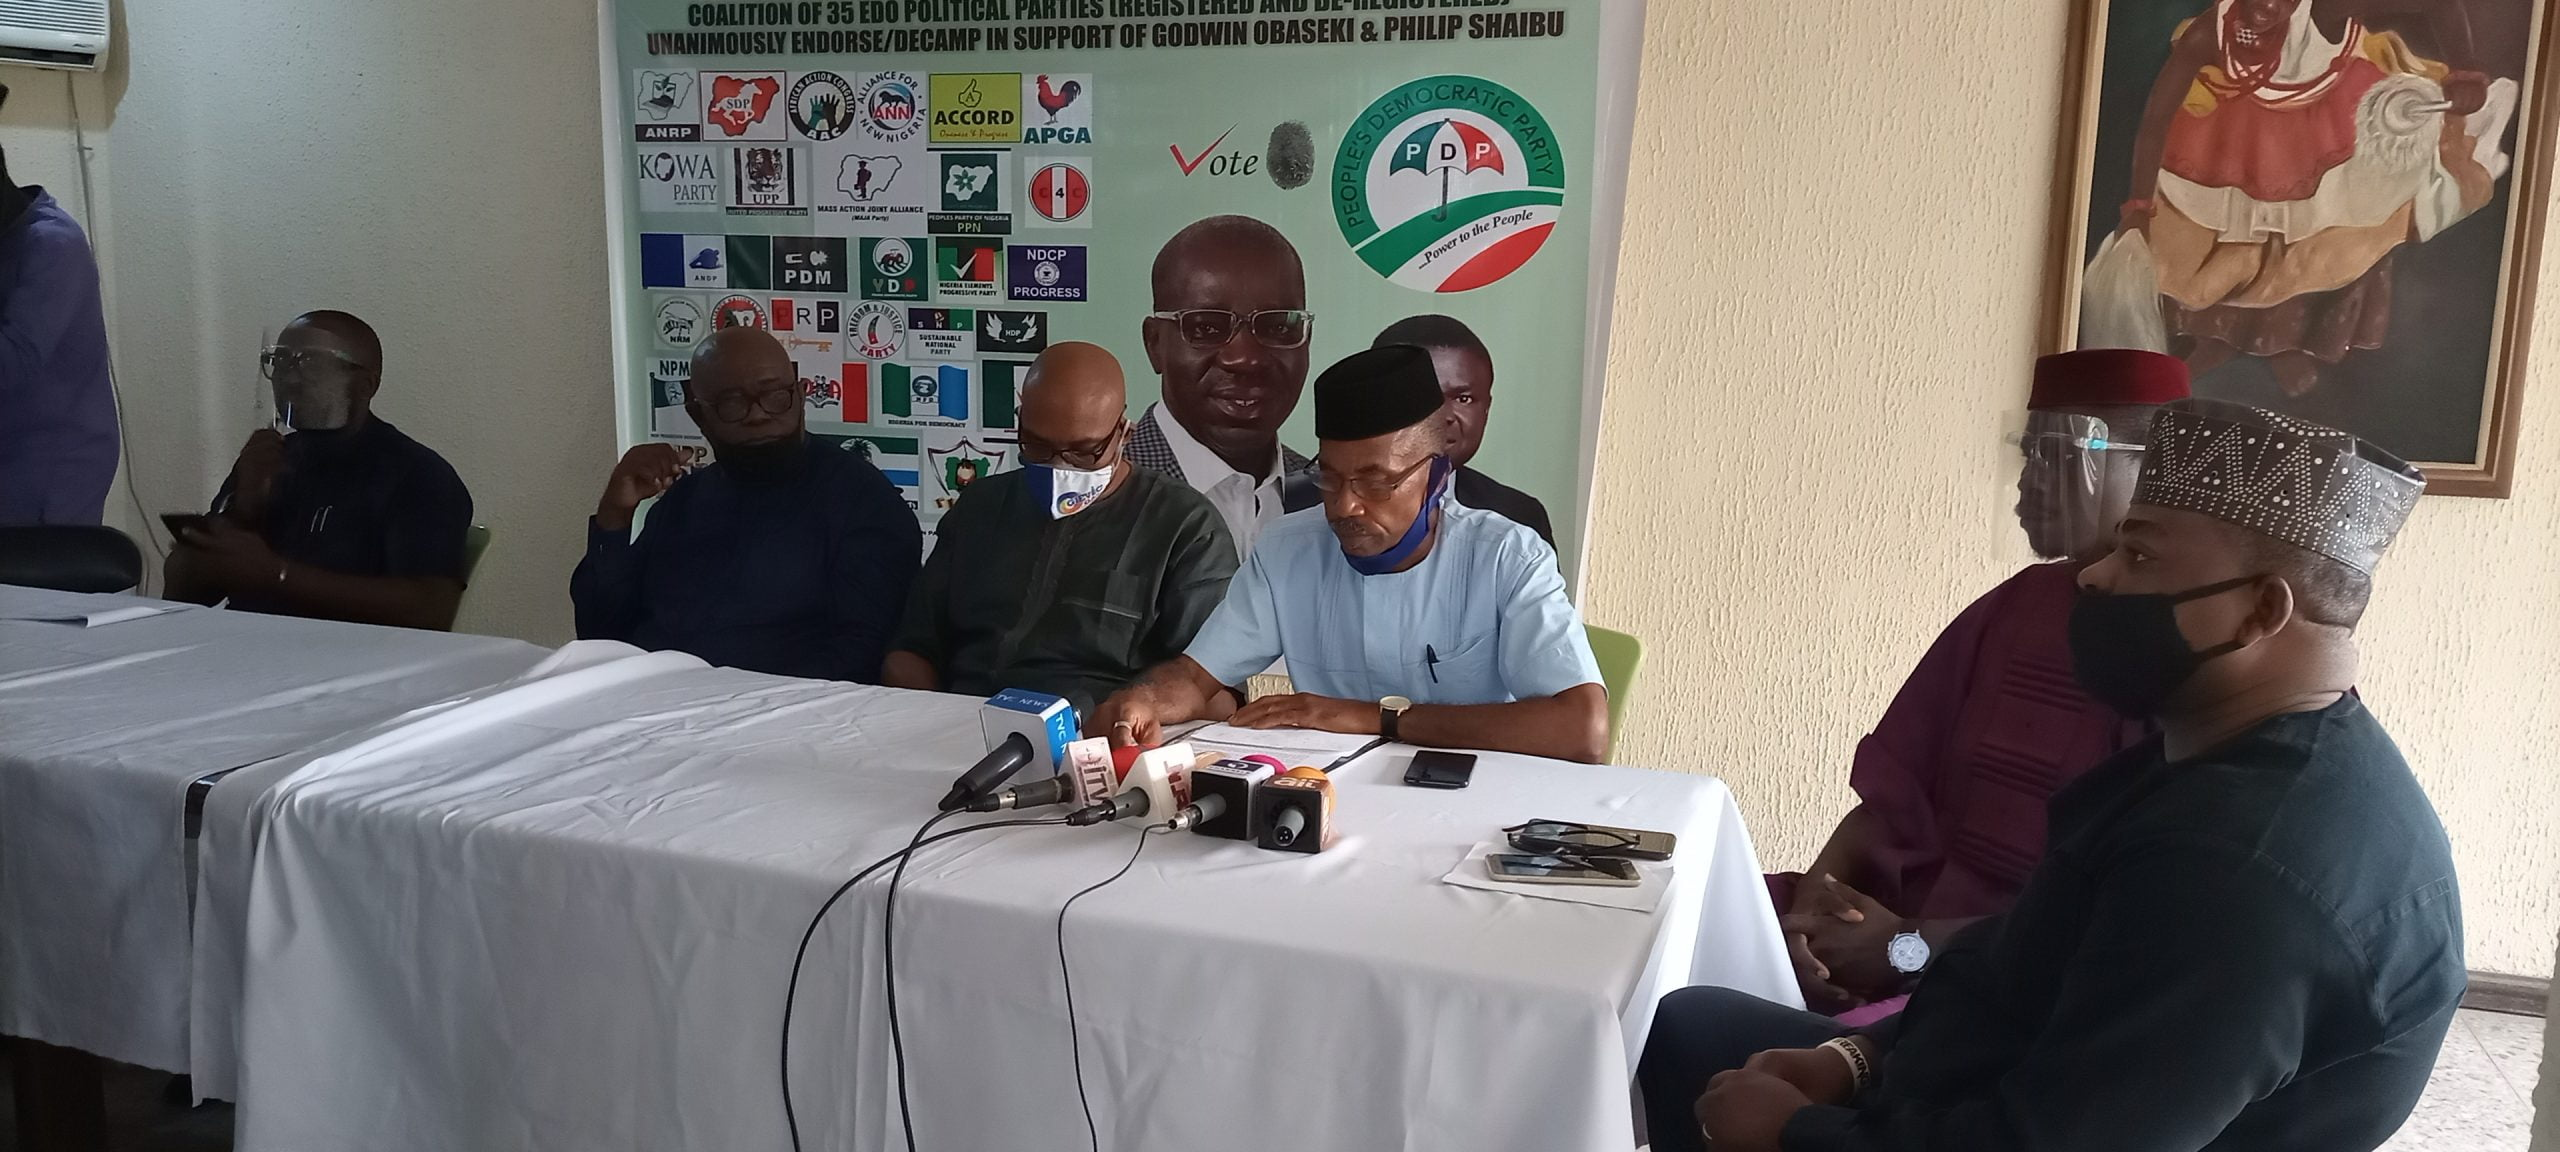 A coalition of 35 registered political parties, under the aegies of Coalition of Political Parties (CPP), in  Edo on Friday endorsed the re-election of governor Godwin Obaseki and Philip Shaibu for another four years. The Chairman of Social Democratic Party (SDP), and CPP in the state, Mr Collins Oreruan, told newsmen at a news conference […]